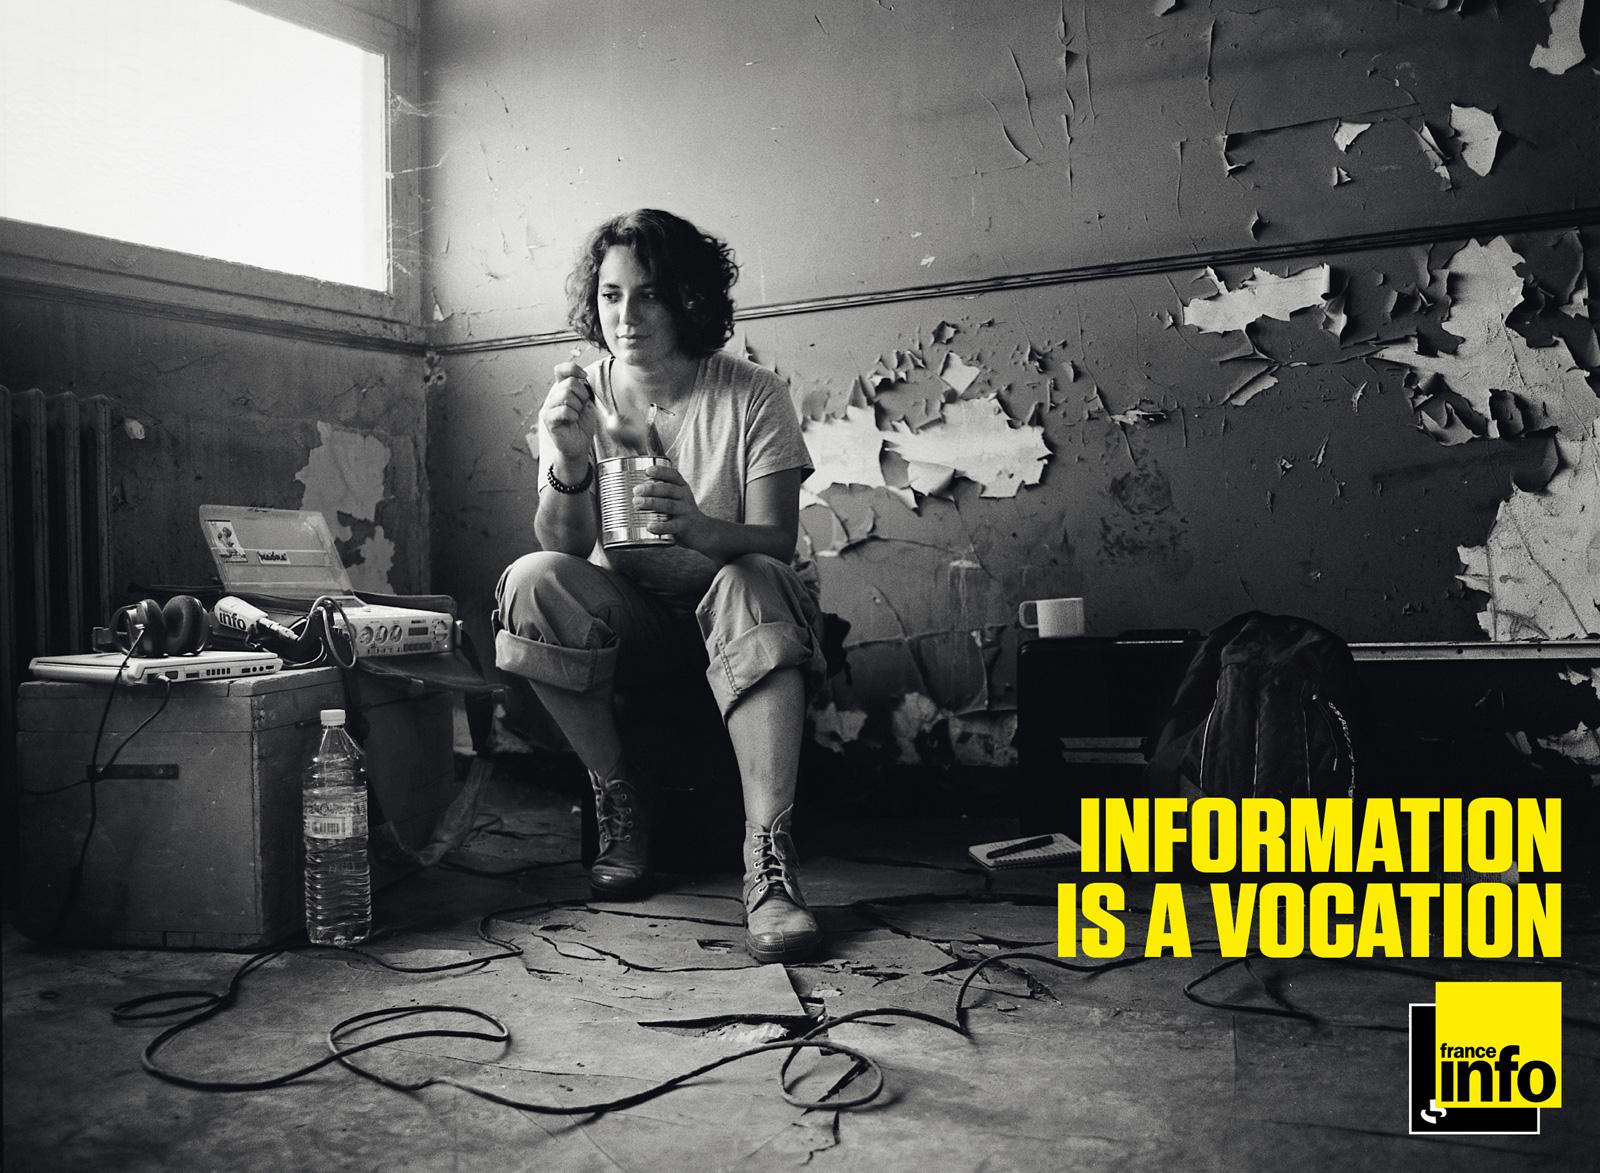 France Info Print Ad -  Information is a vocation, 2